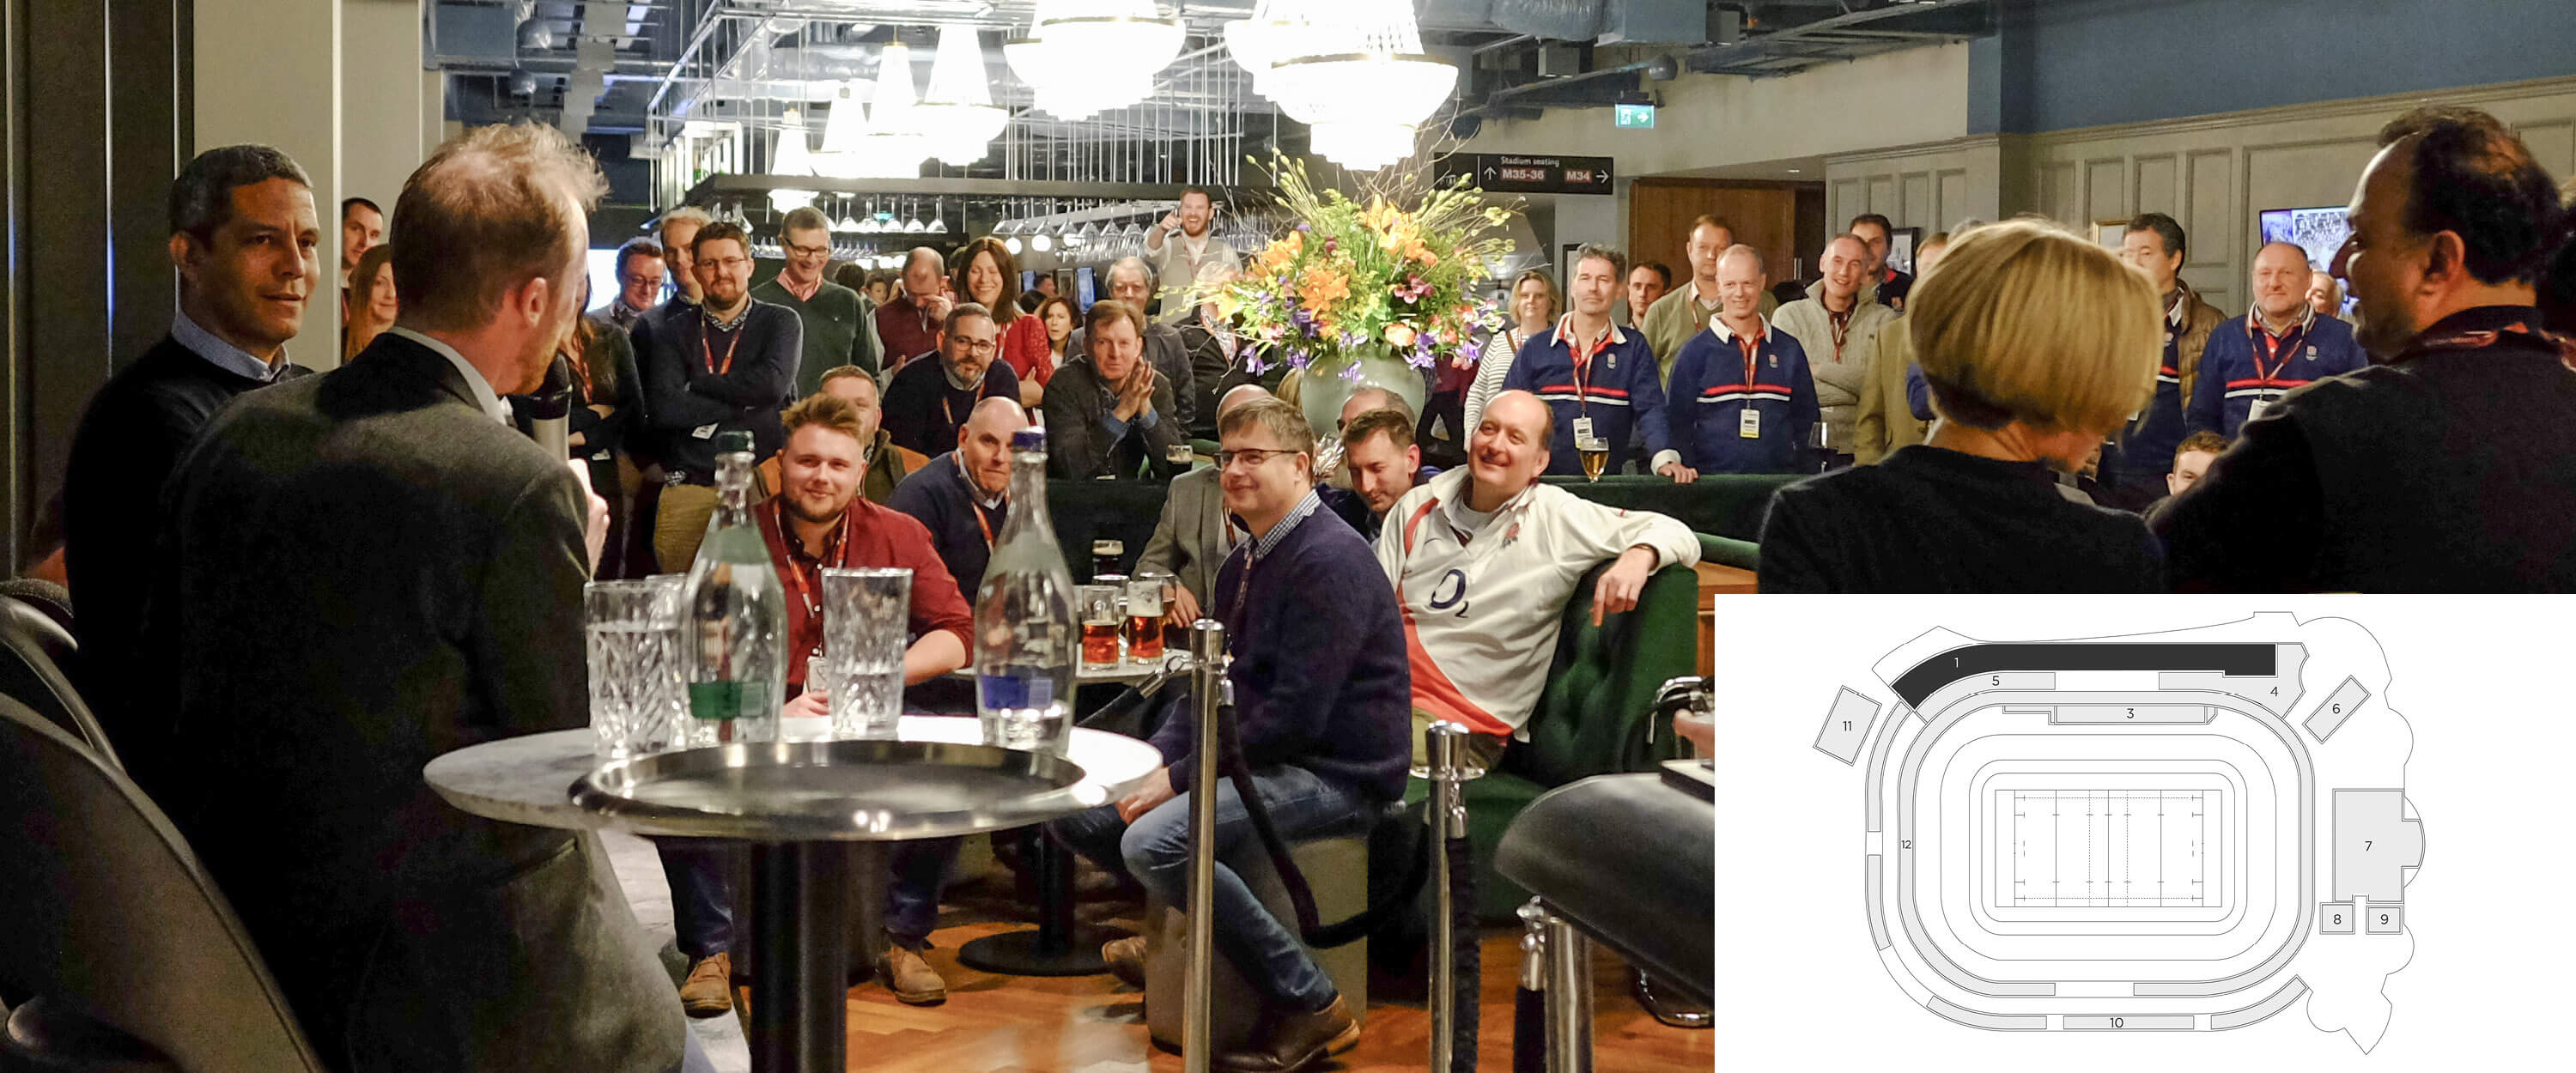 Hospitality guests at the East WIng, Twickenham Stadium enjoying a meet and great with past players.